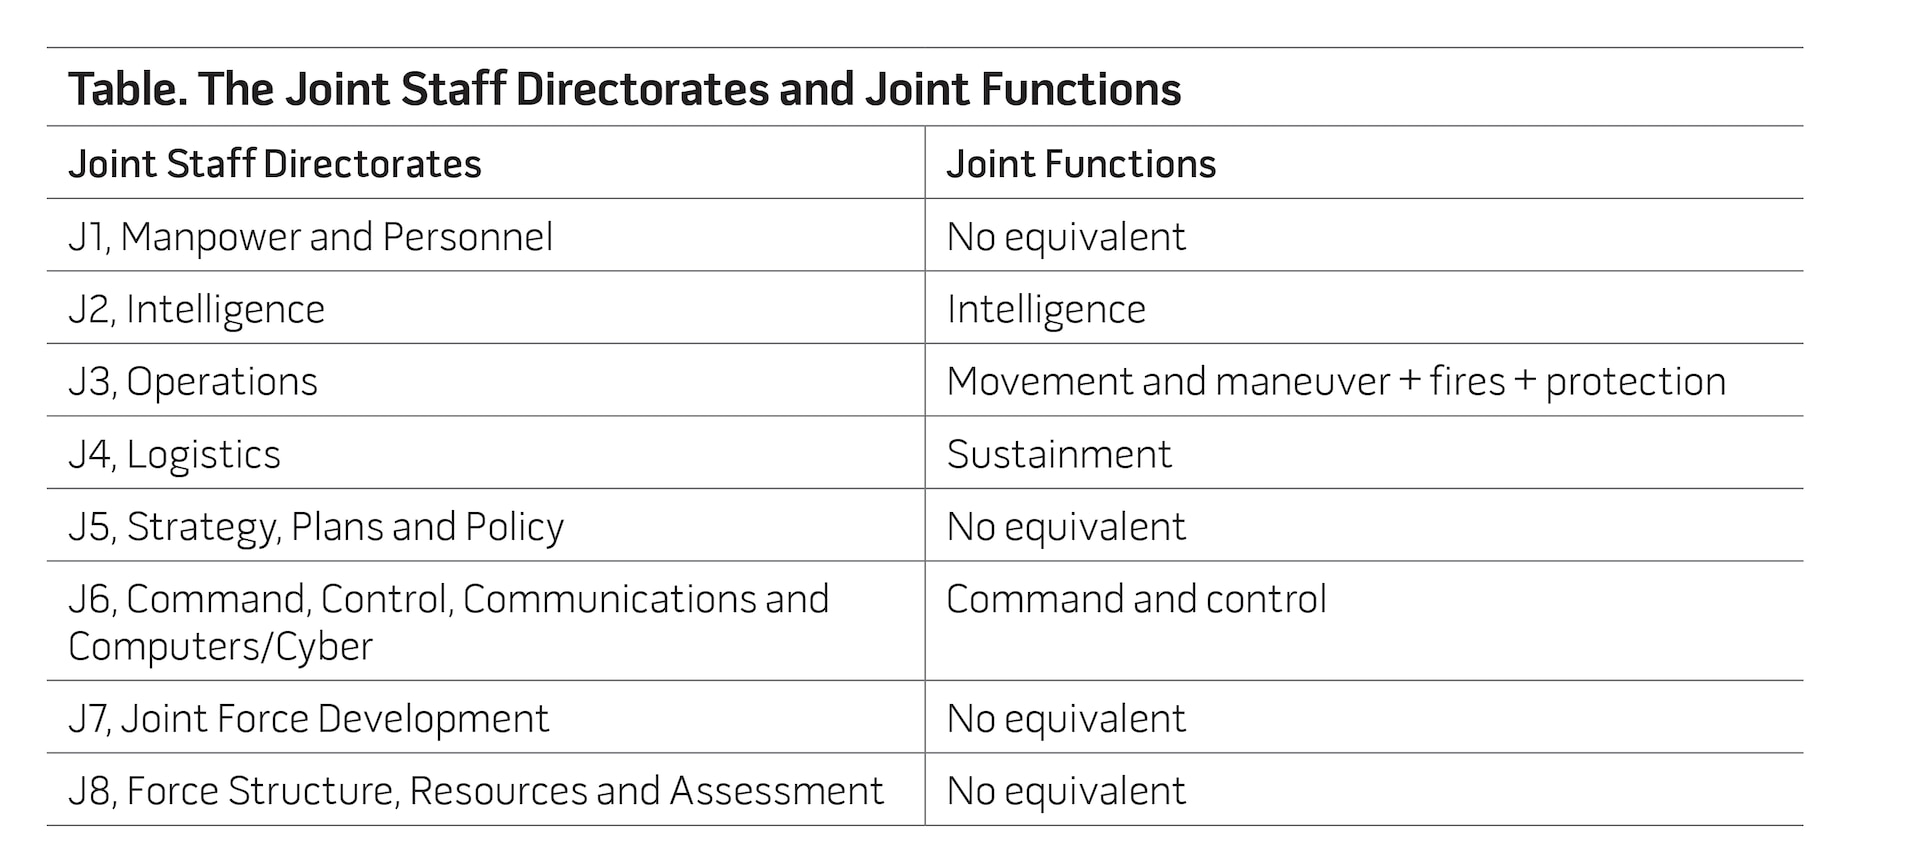 Table. The Joint Staff Directorates and Joint Functions